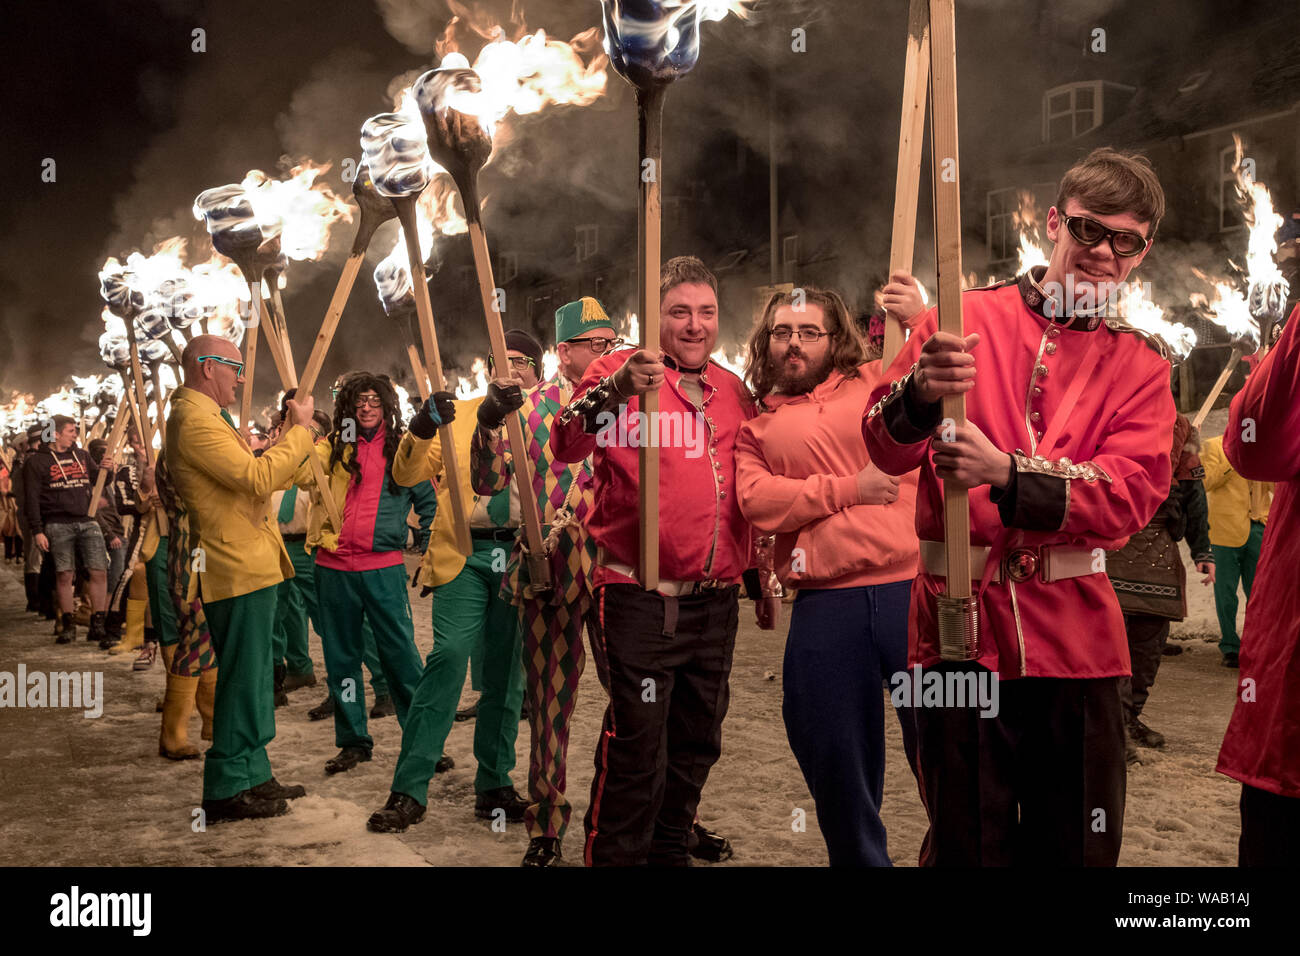 Men in various fancy dress costumes holding fire torches pose for the camera at the 2019 Up Helly Aa festival in Lerwick, Shetland Stock Photo